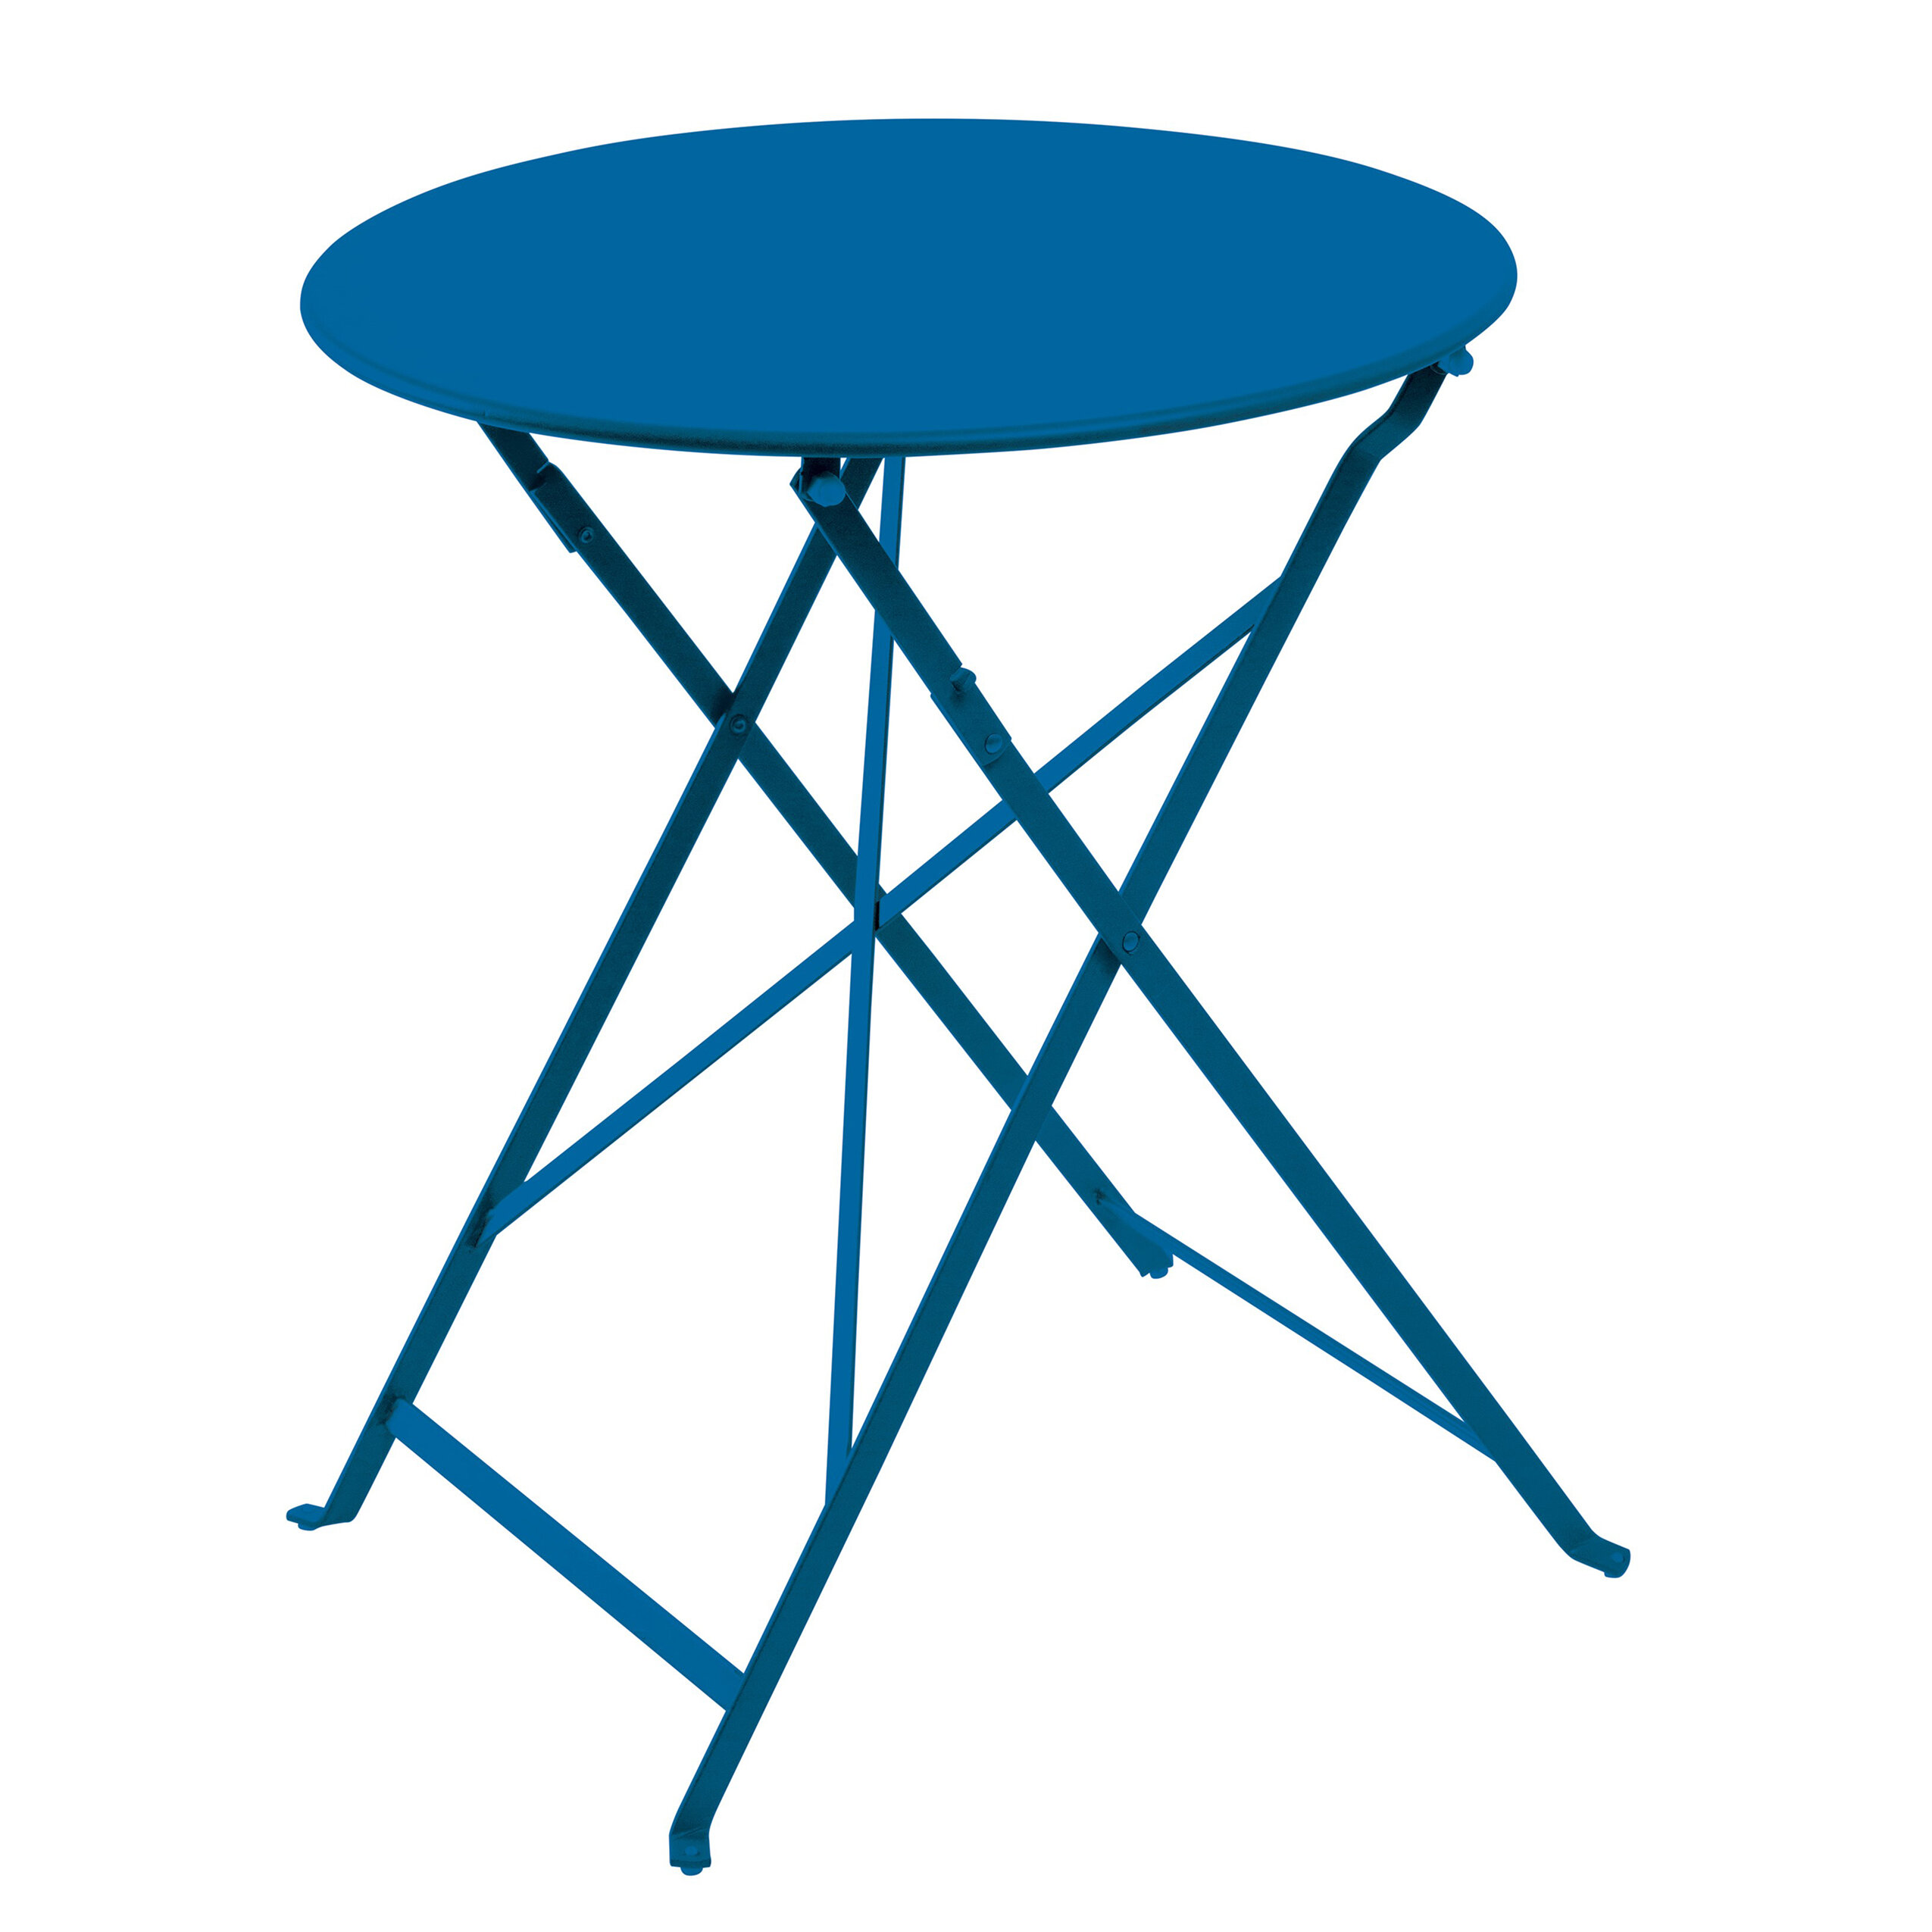 Highland dunes fennell patio round folding powder coated steel bistro table wayfair